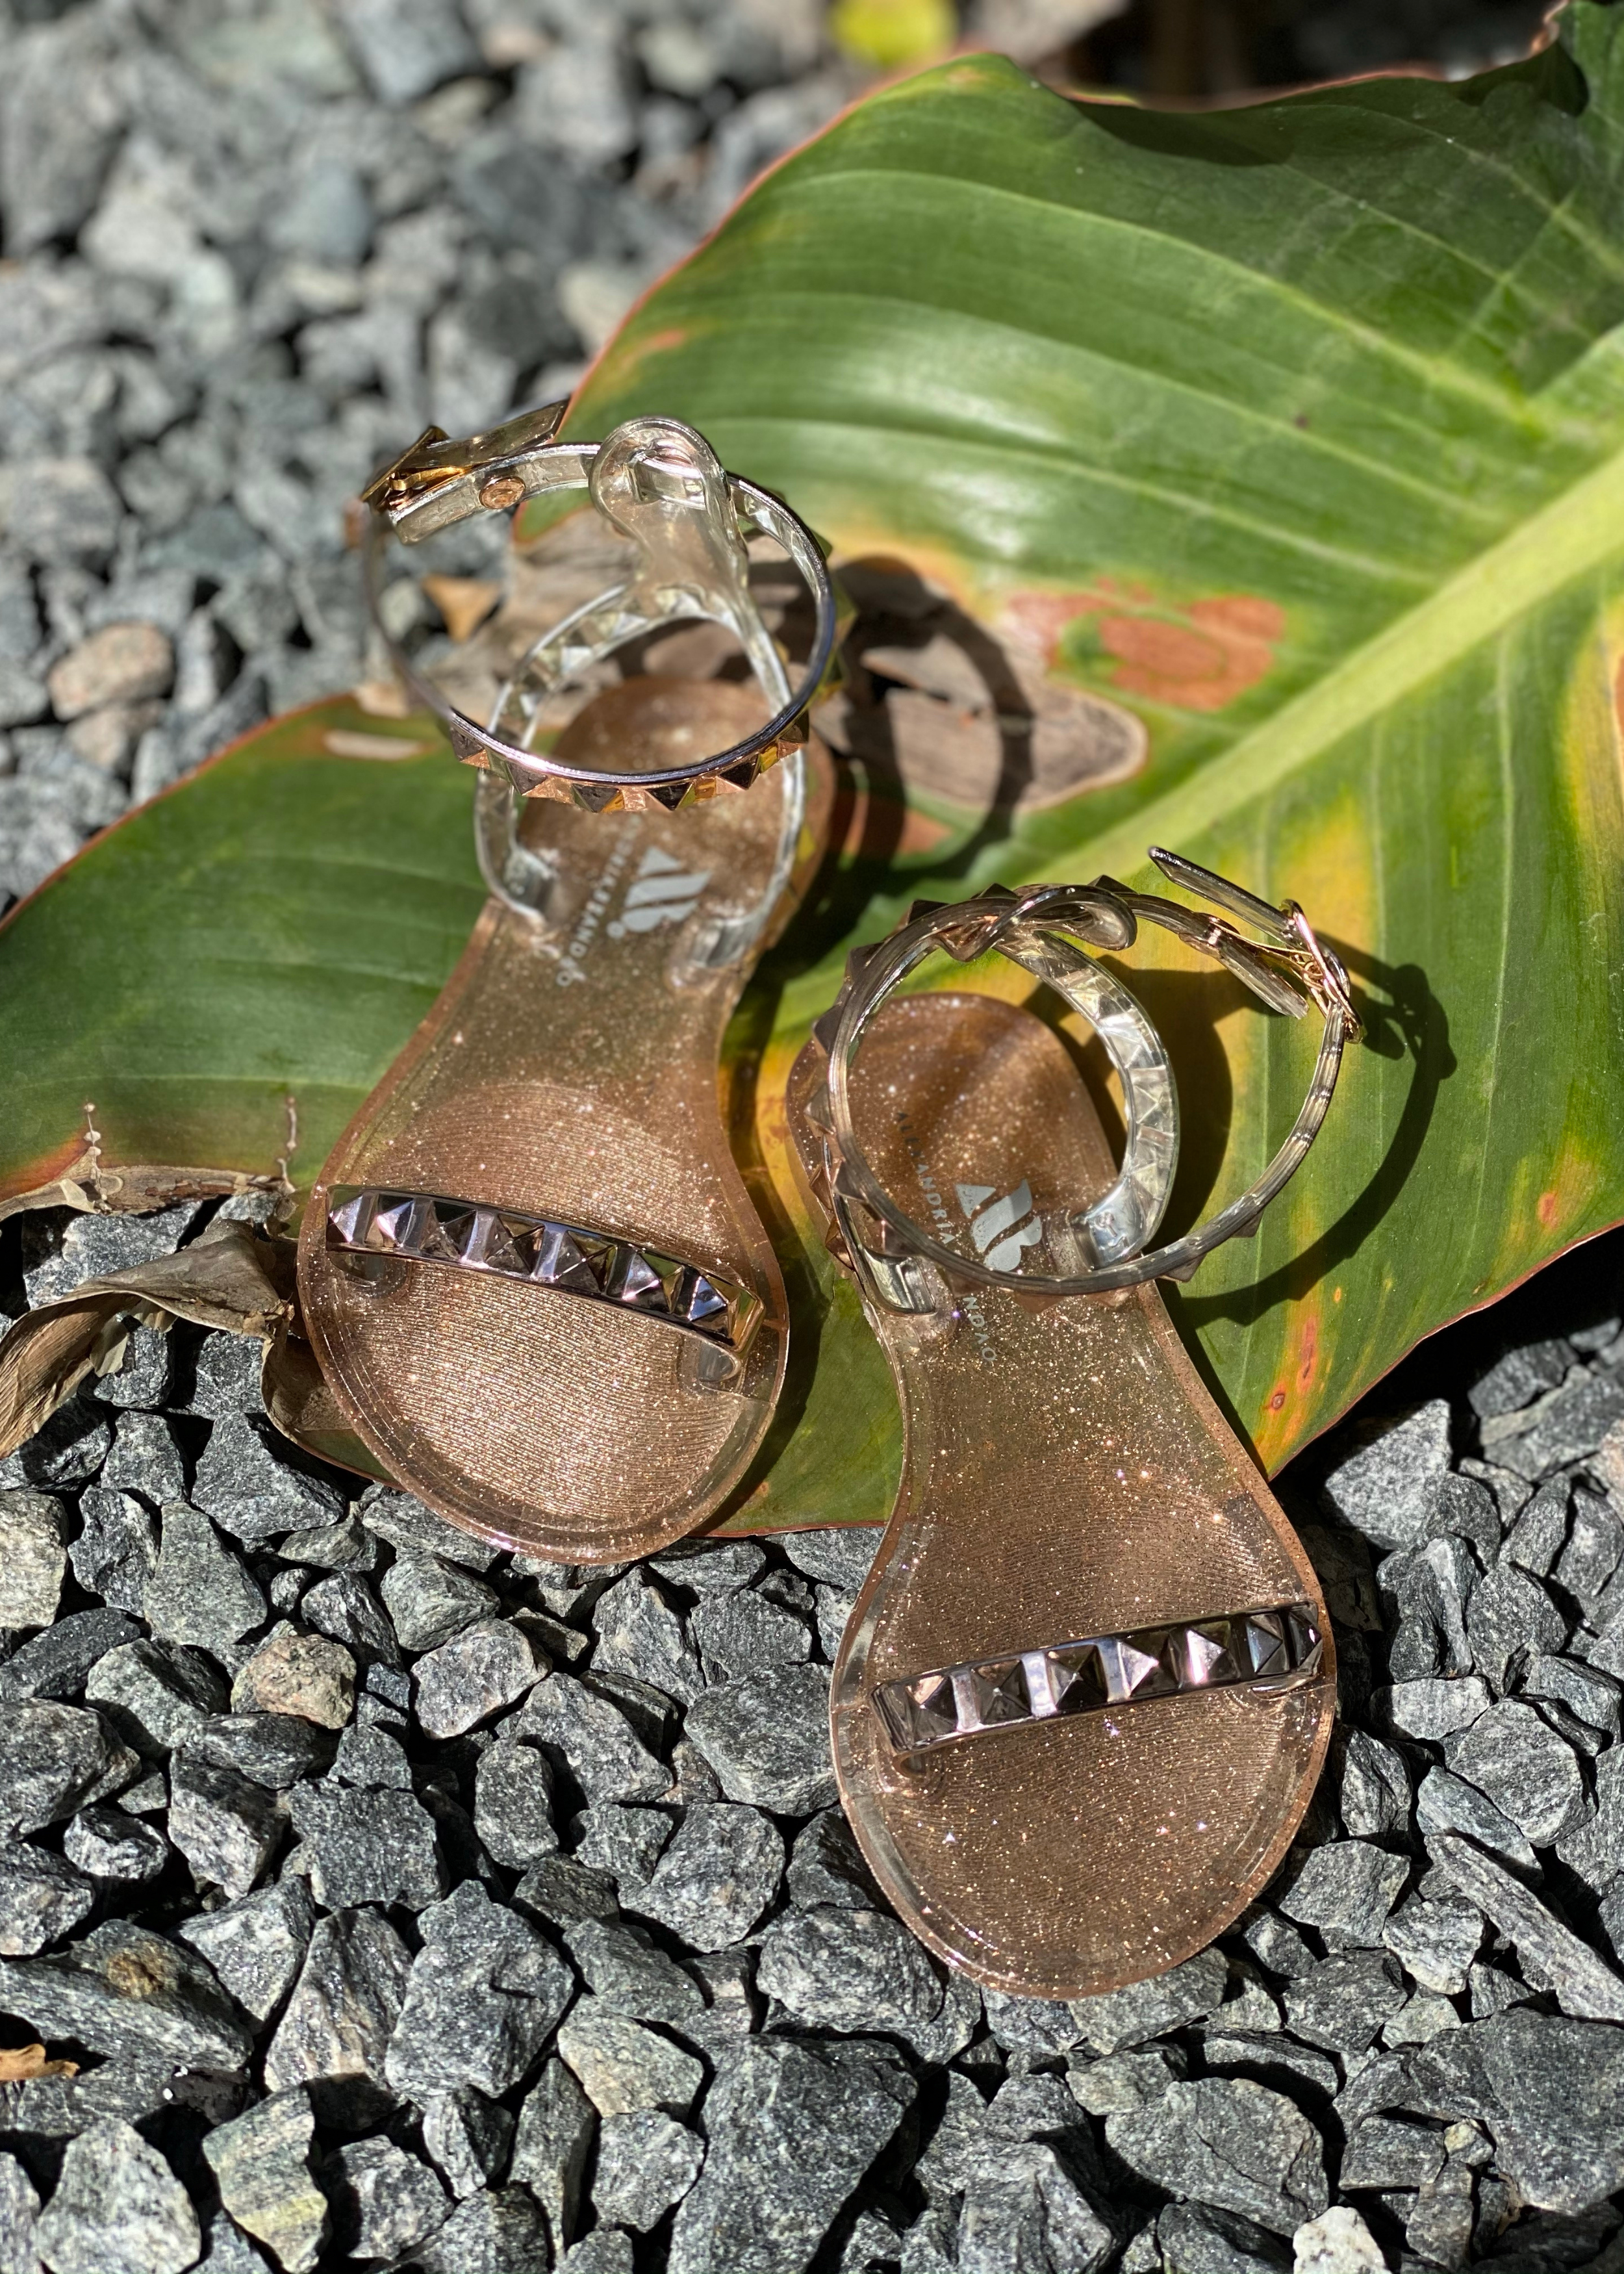 Aria kid's girl rose gold sandals. Kid's gold shoes. Kid's rose gold jelly sandal. Kid's rose gold waterproof sandals. Kid's rose gold waterproof shoes. mommy and me rose gold sandals